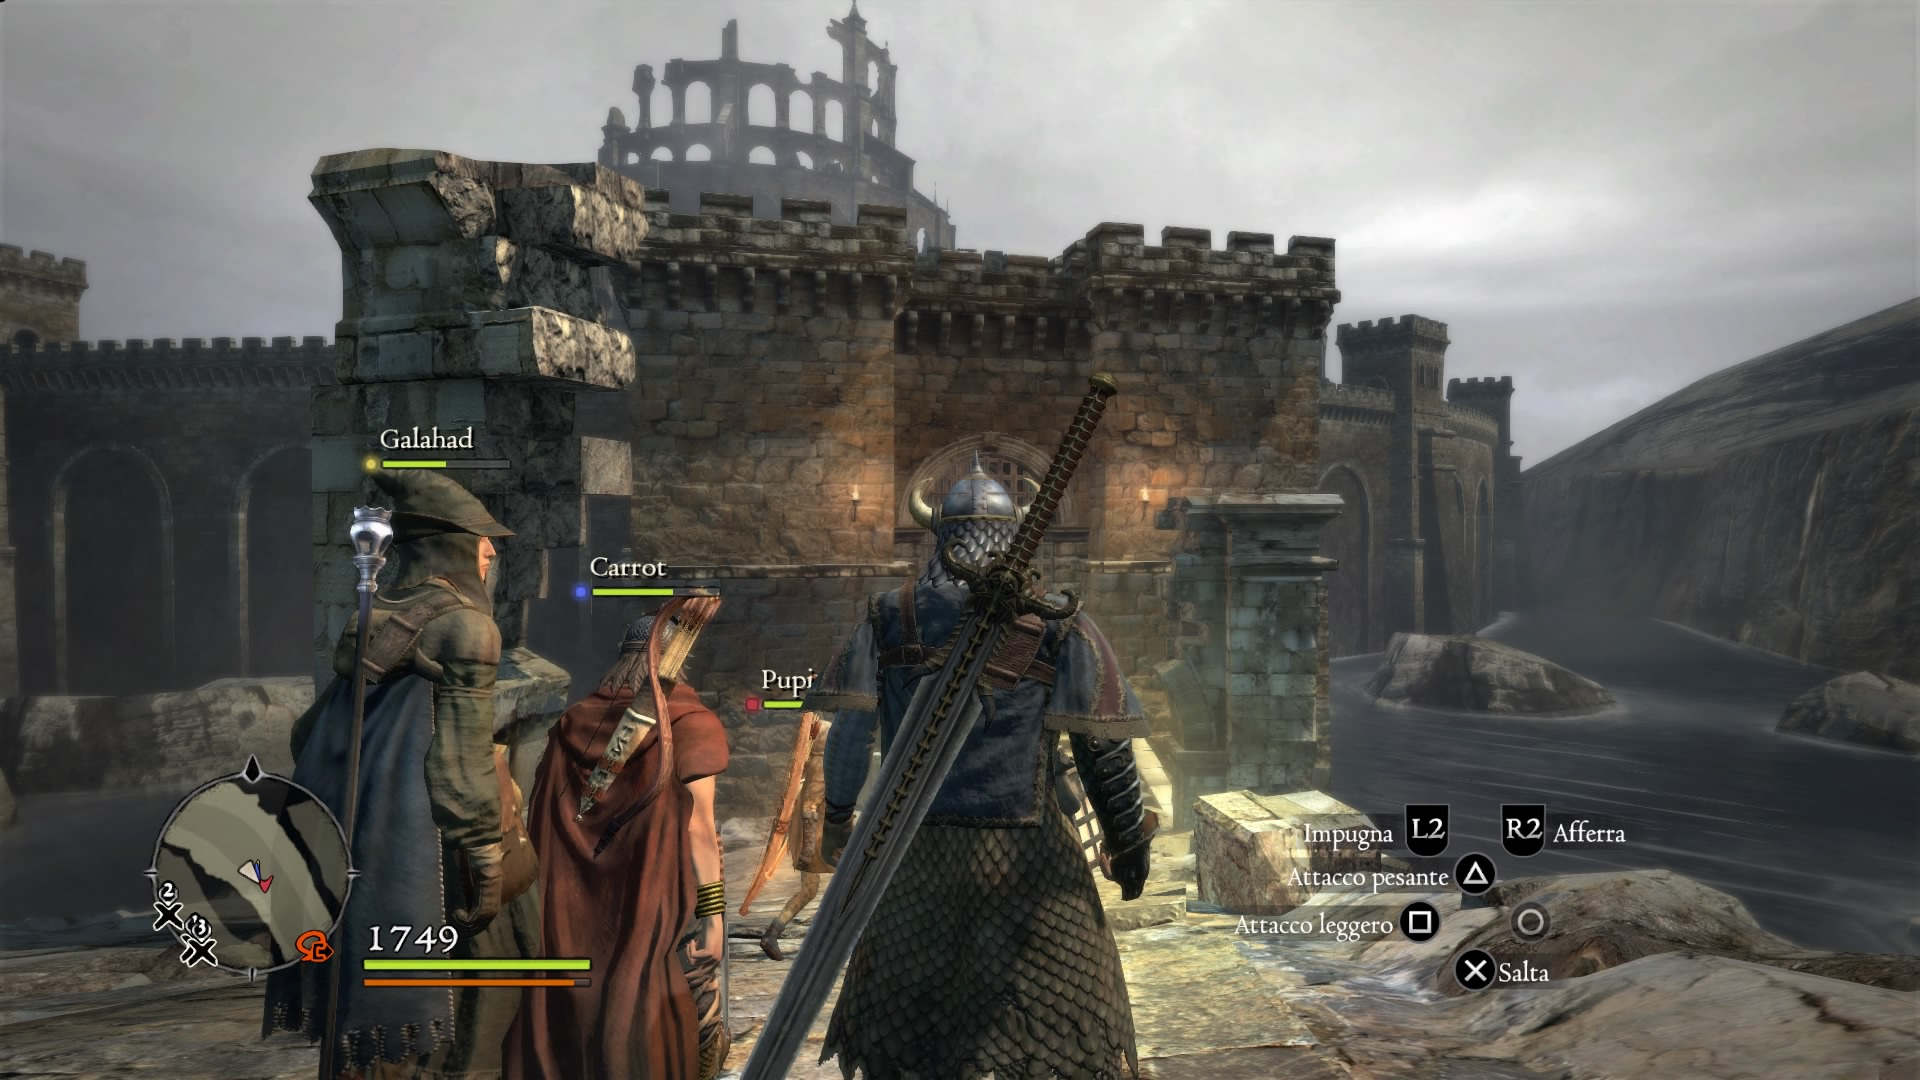 Dragon's Dogma party